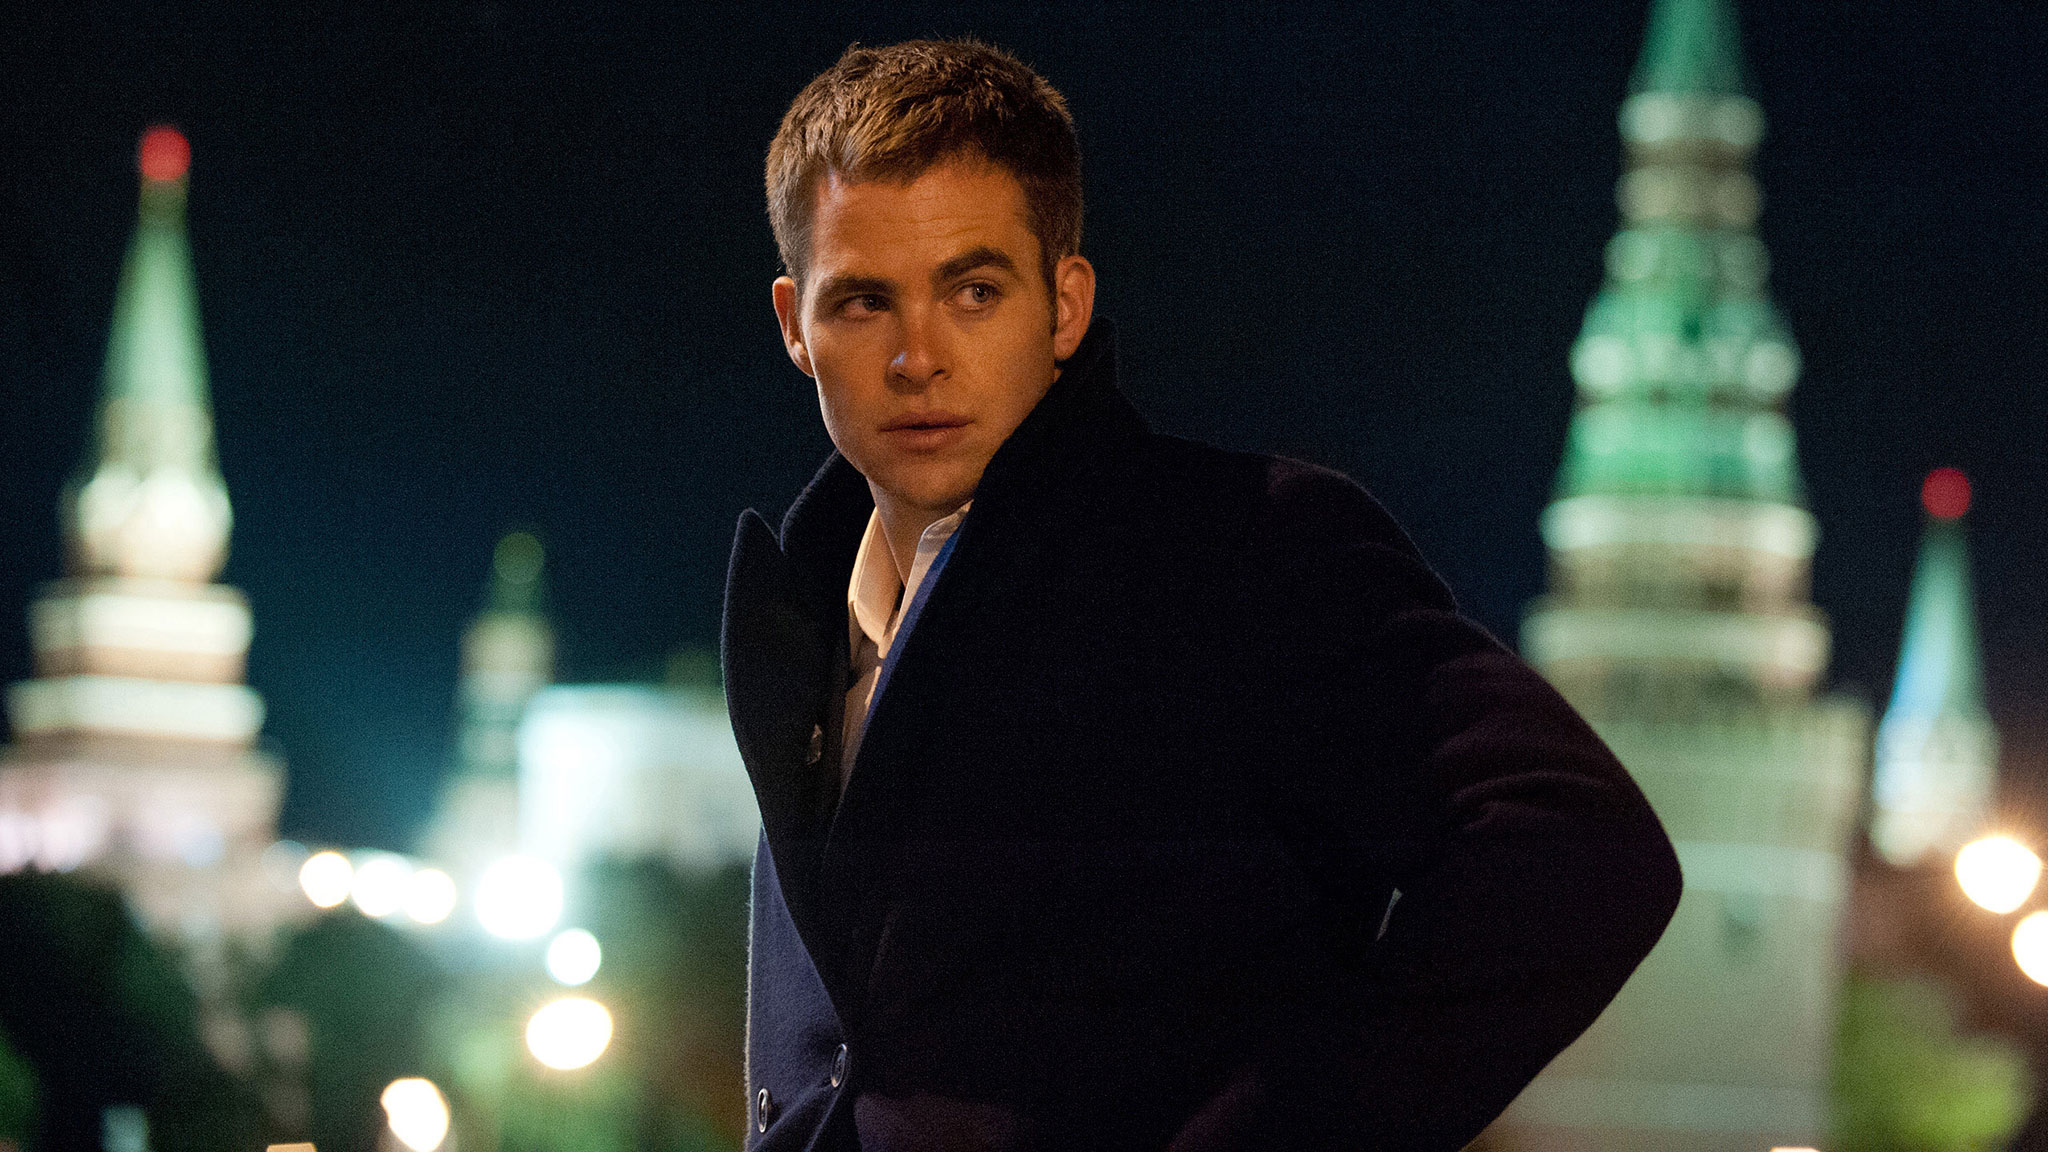 Chris Pine vs Chris Pratt Divergent Paths to Stardom